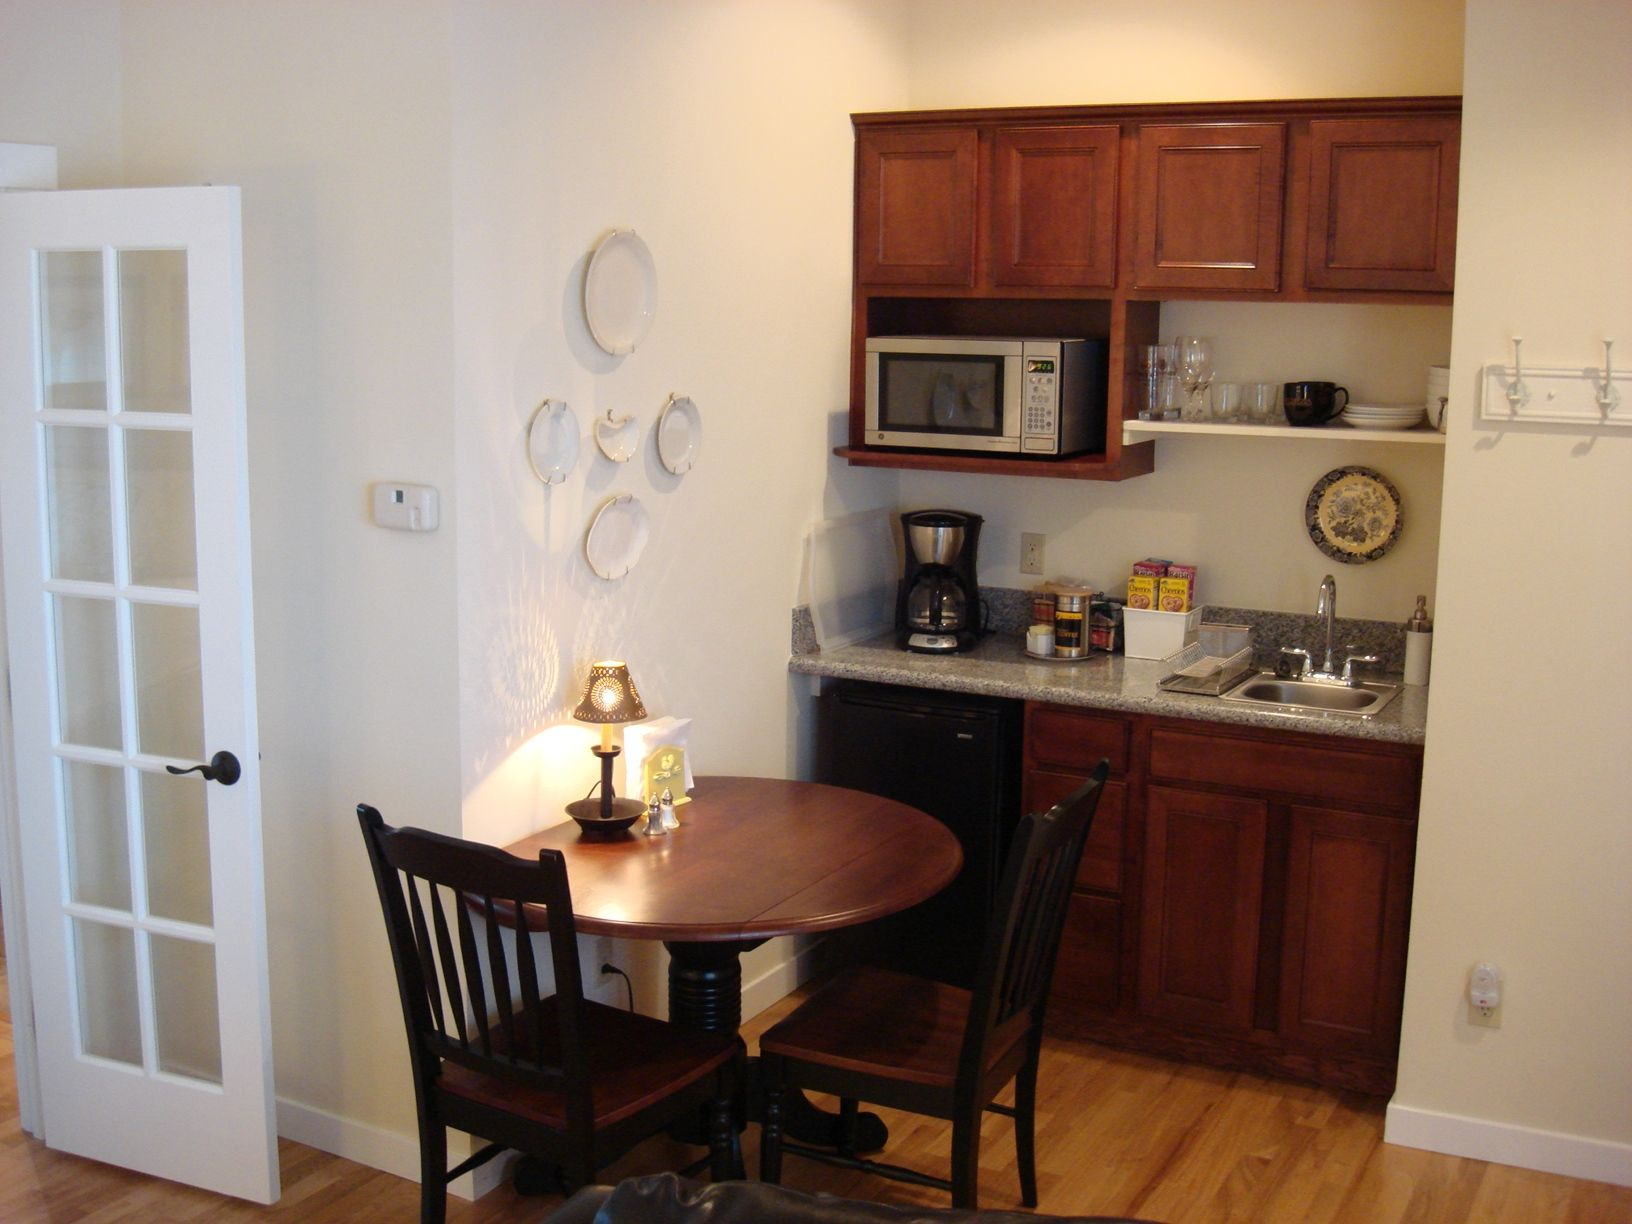 mother in law suite design pictures remodel decor and ideas kitchenette reservations can be made either by office kitchenettebasement kitchenbasement ideasattic